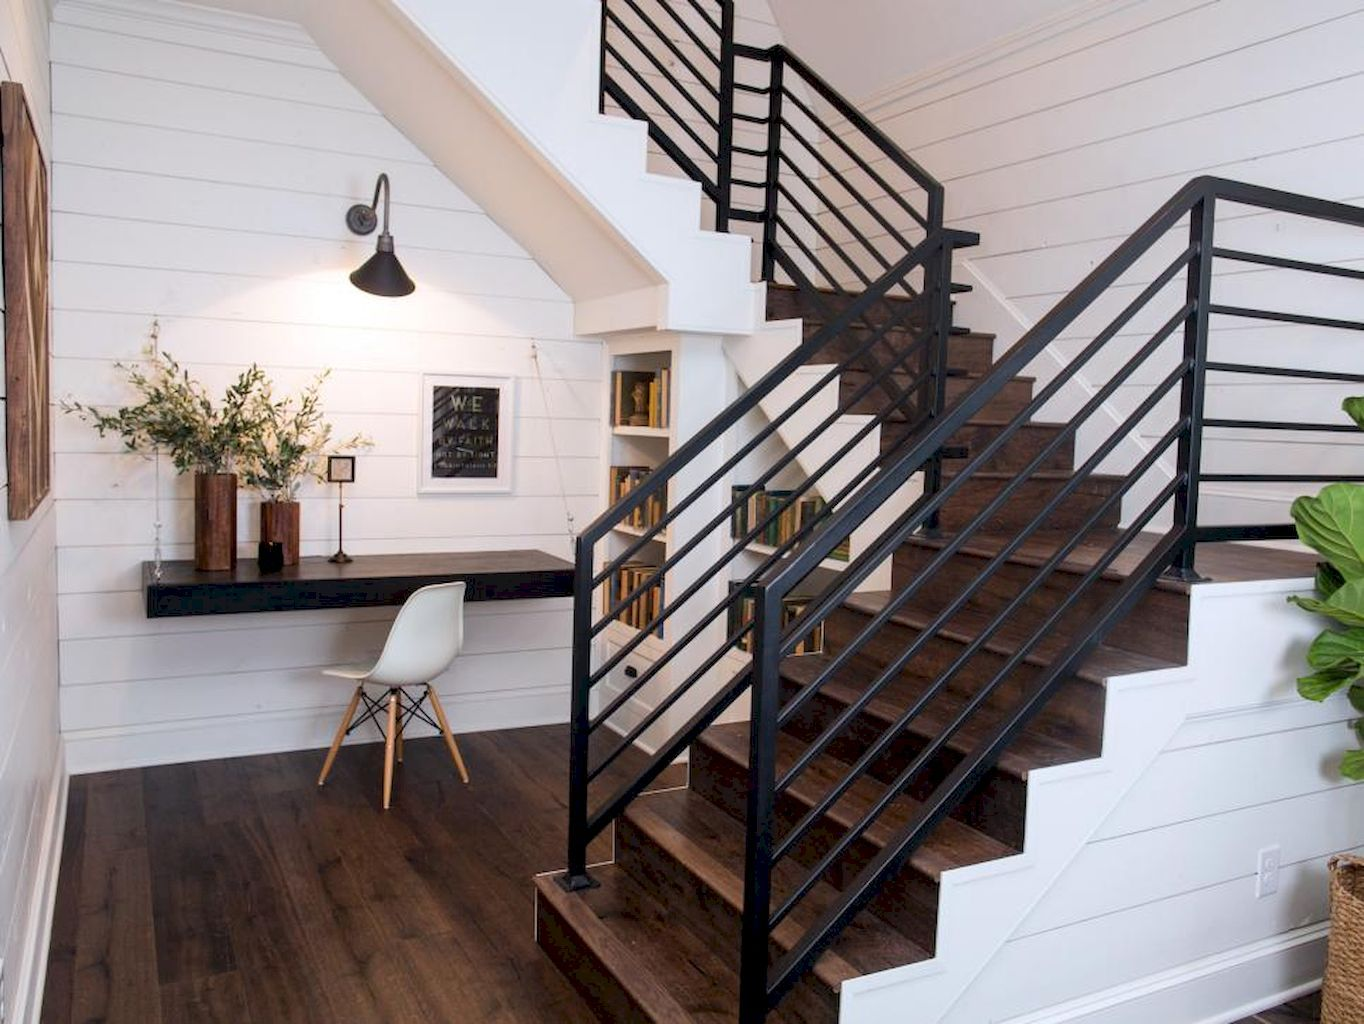 Awesome 80 Modern Farmhouse Staircase Decor Ideas  Https://livingmarch.com/80 Modern Farmhouse Staircase Decor Ideas/